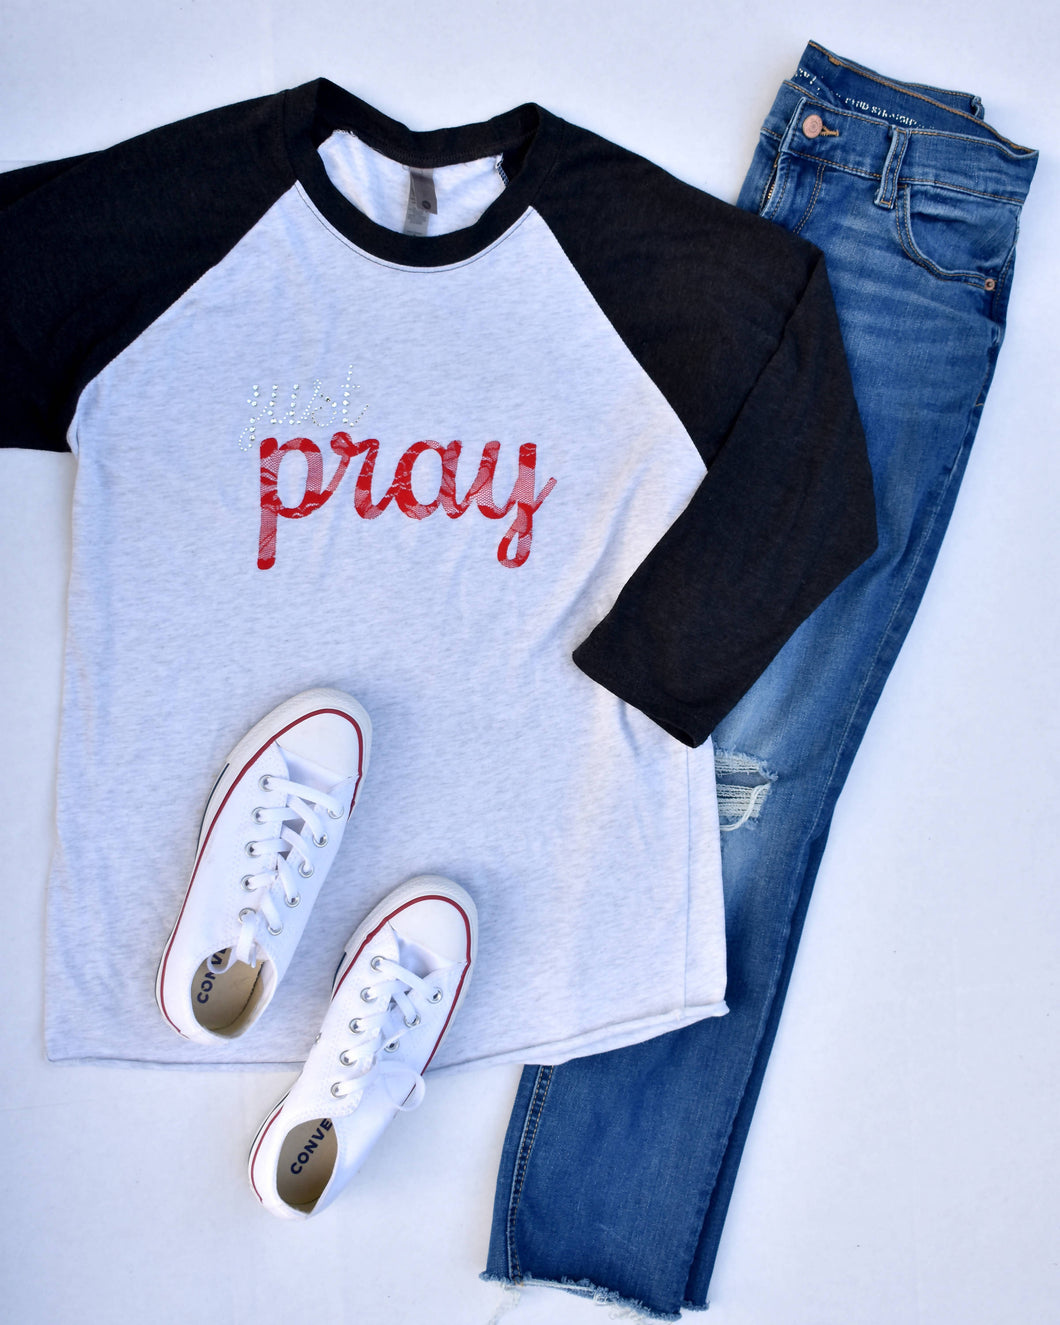 Just Pray Baseball Tee